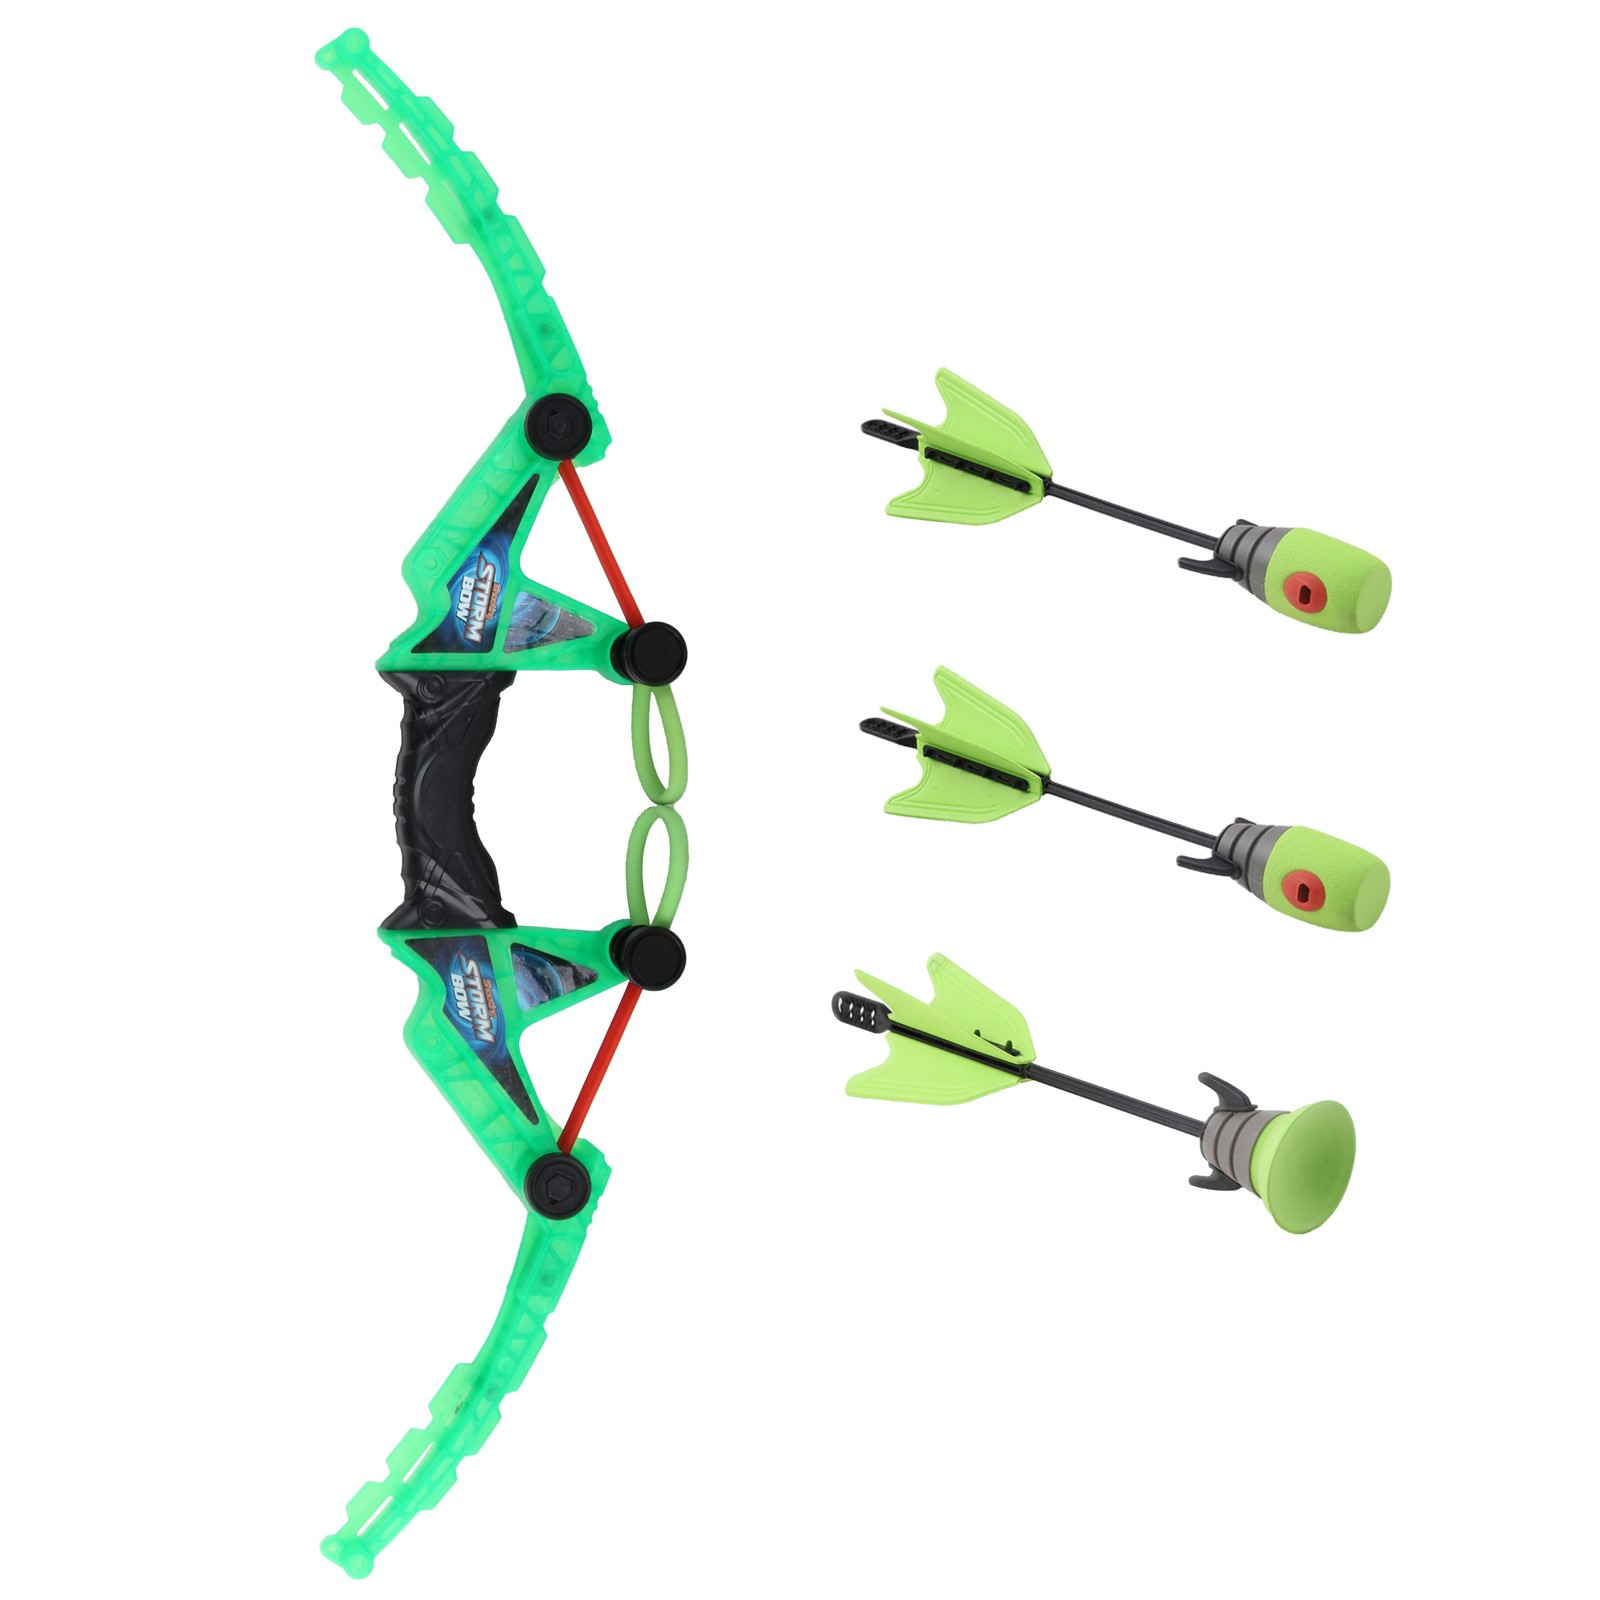 Air Storm Fast Load Bow With Suction Cup And Whistle Arrows Fun Shooting Games Archery Activity Neon Green Color